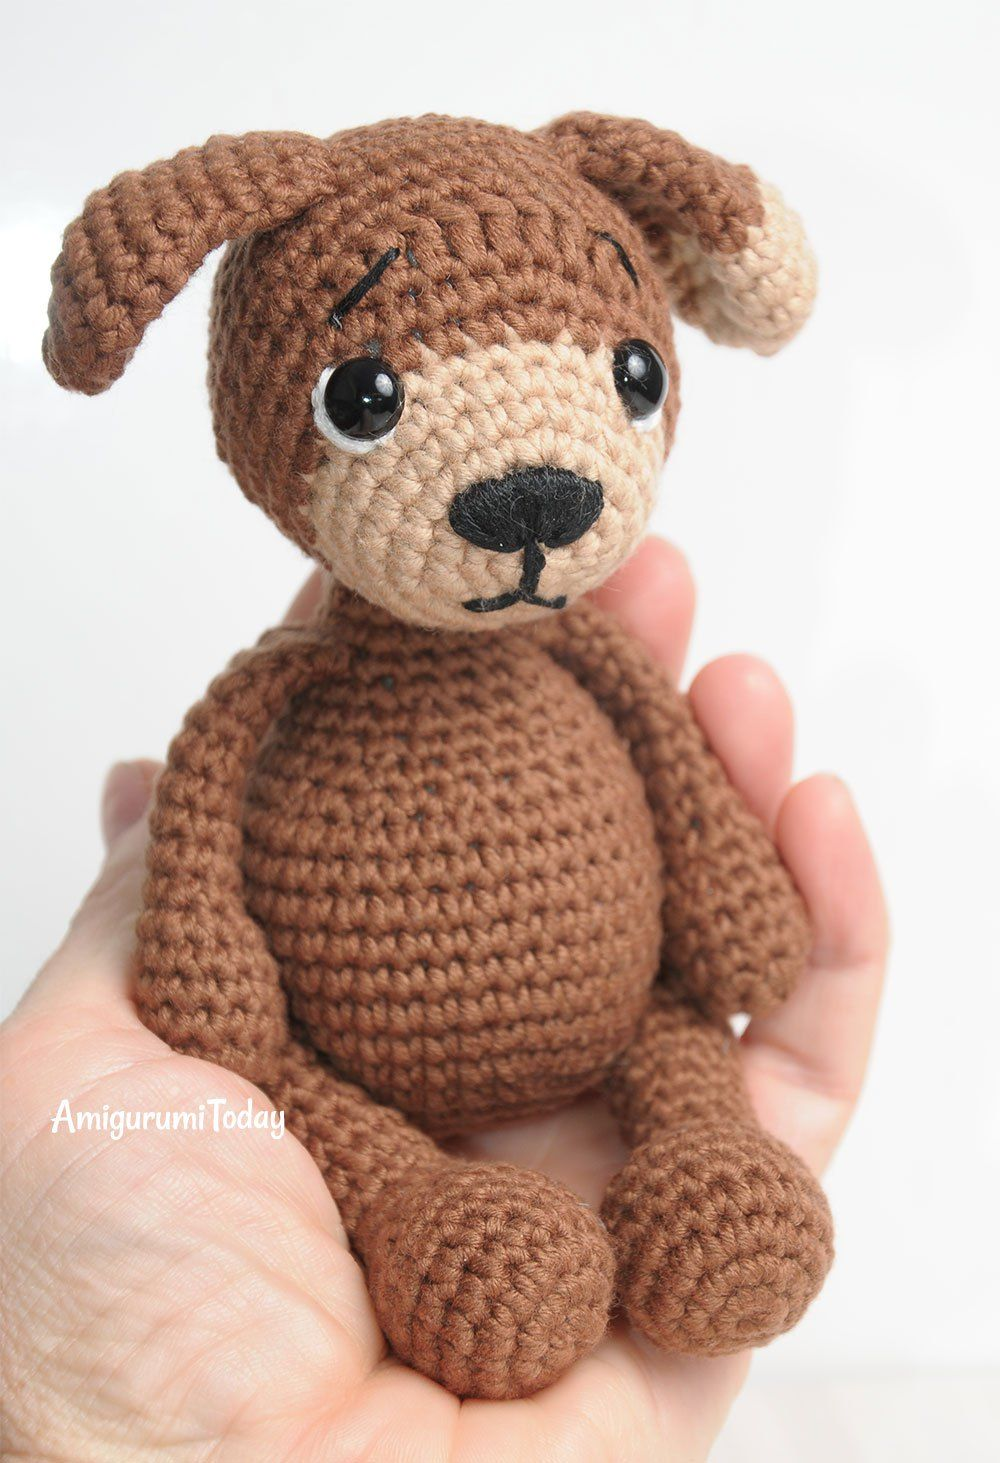 Timmy the Dog amigurumi pattern | Pinterest | Gratis häkelanleitung ...